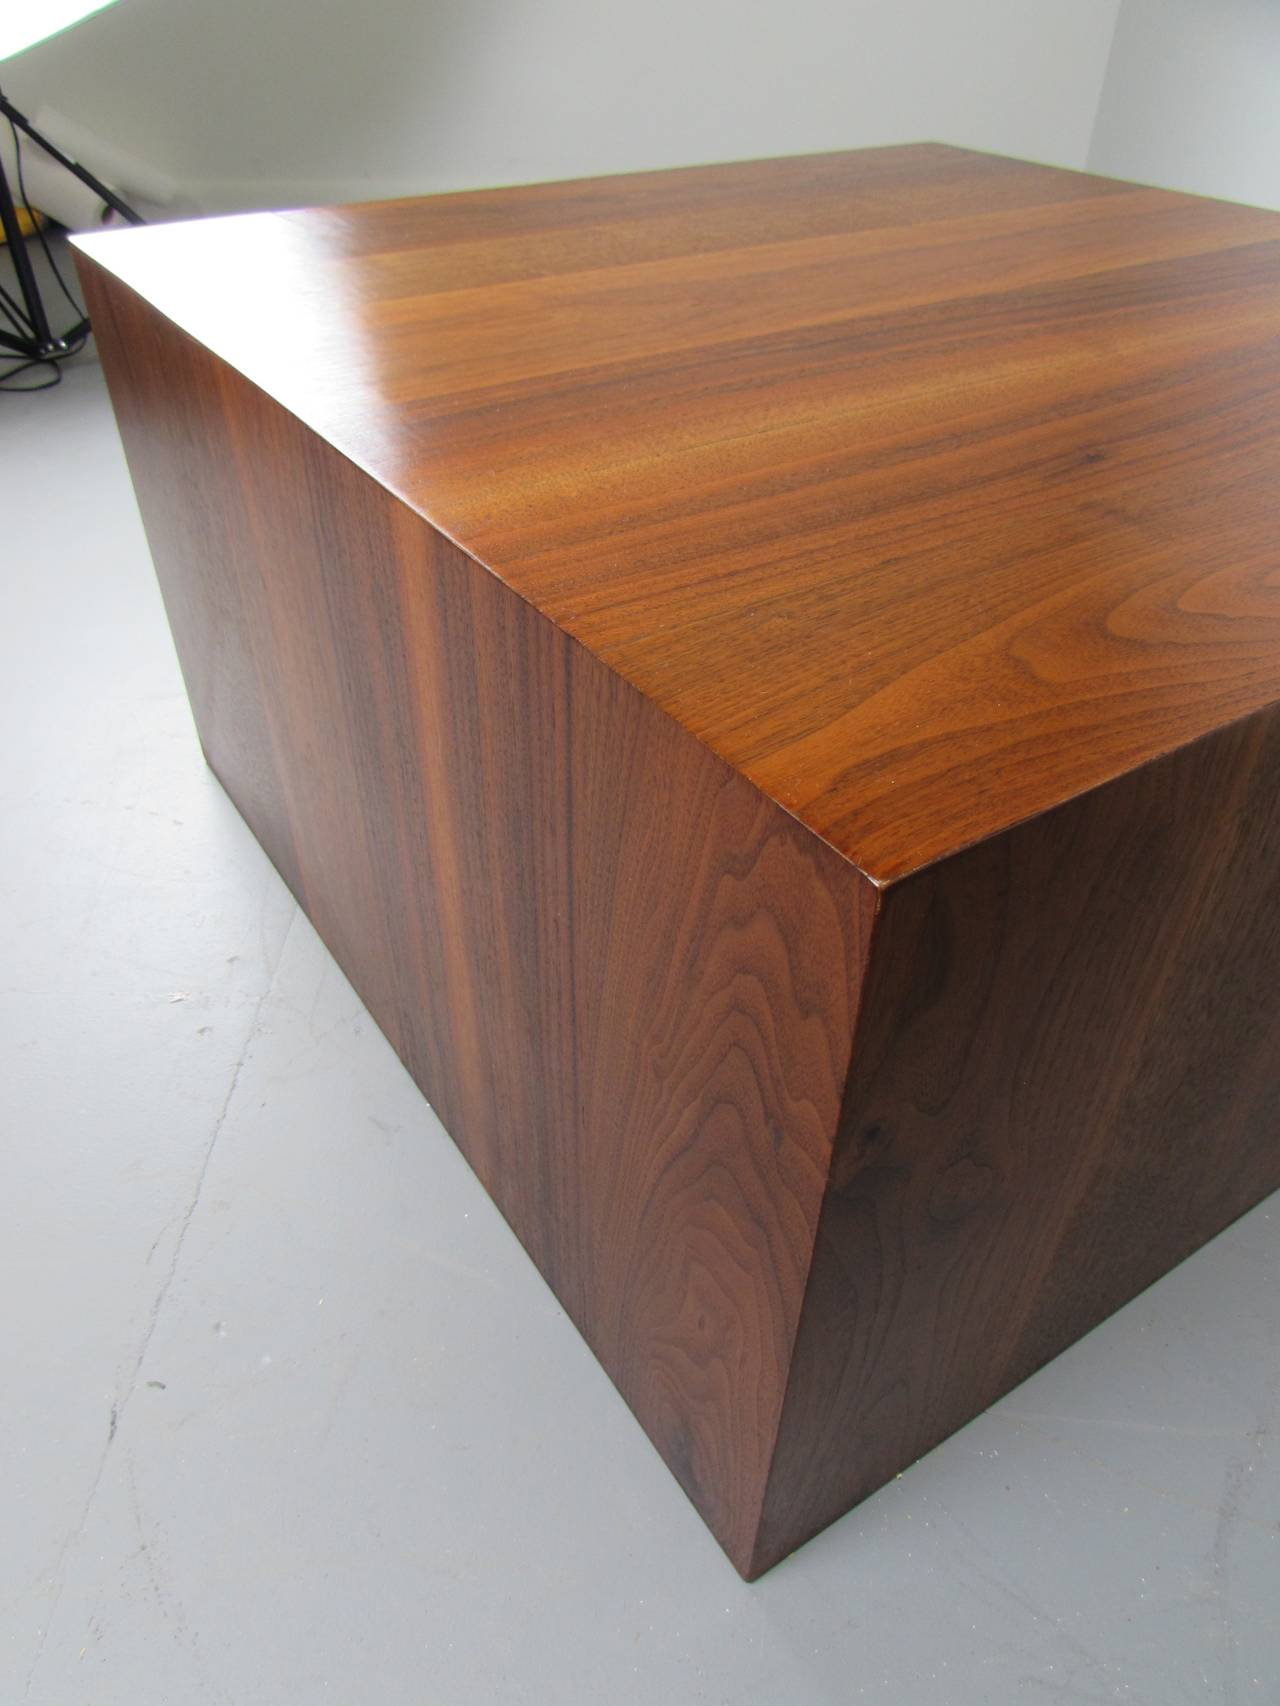 Handsome Walnut Cube Coffee Table by Milo Baughman for Directional